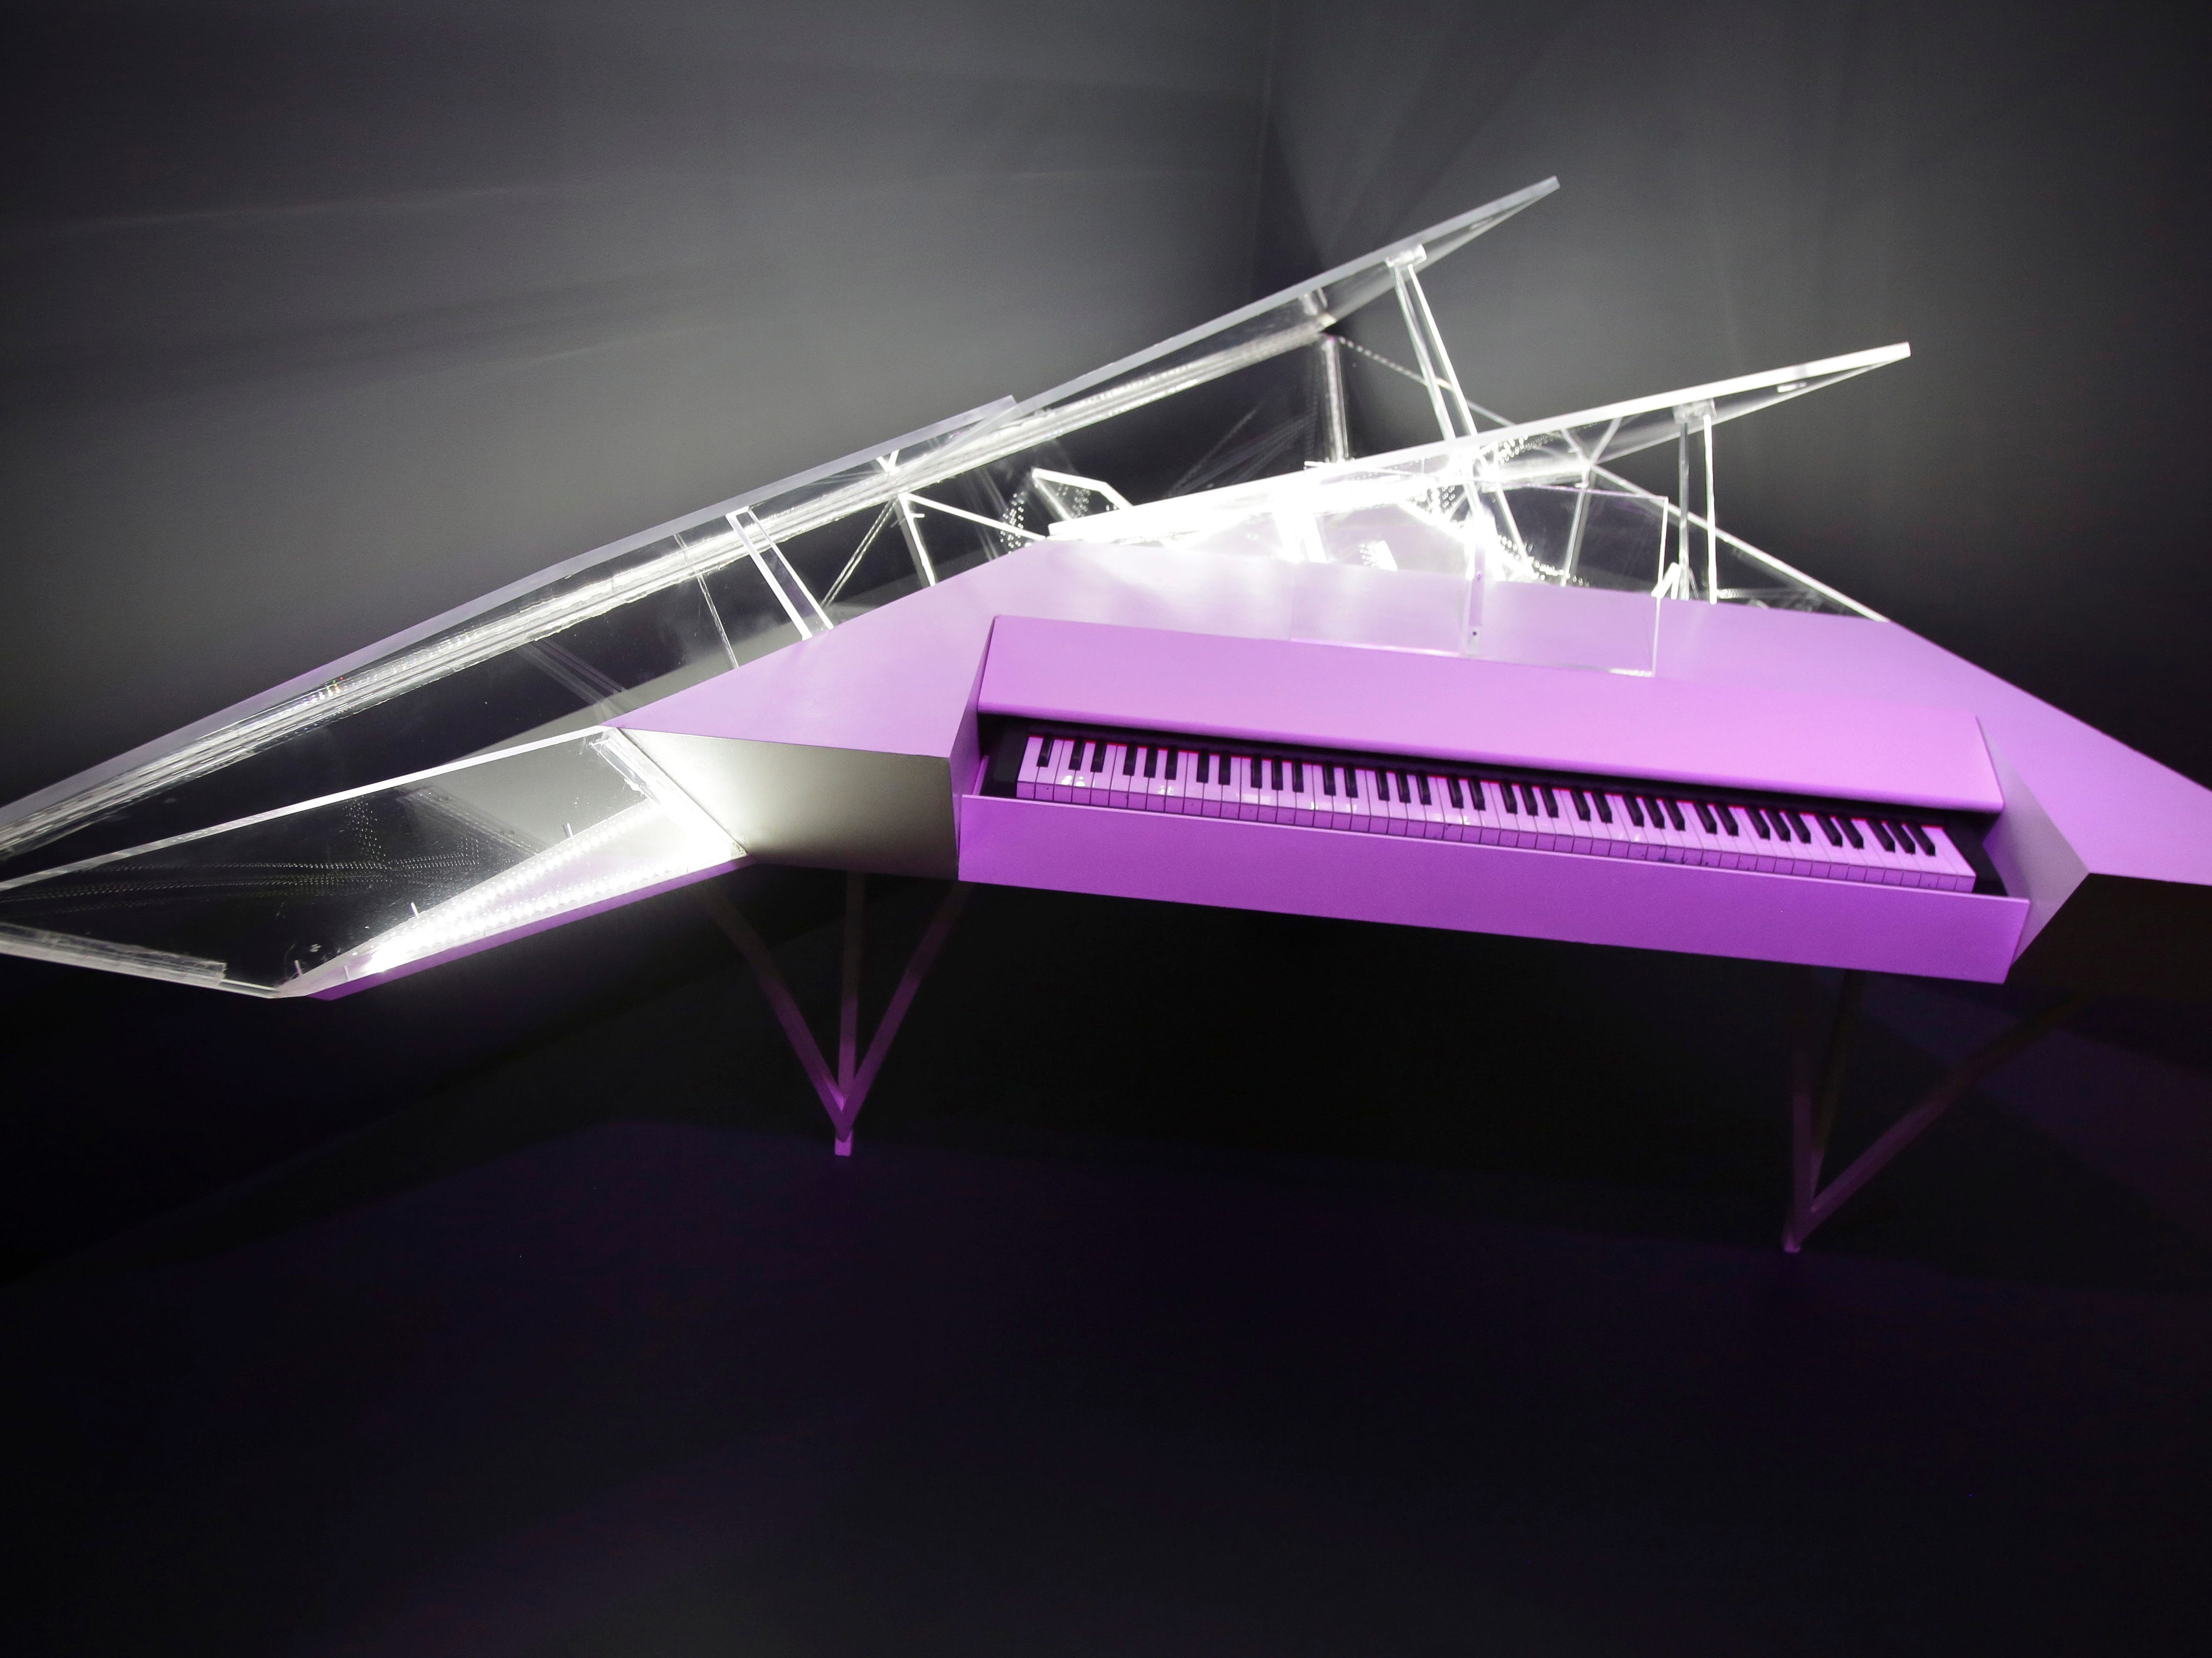 """An electric piano with a customized housing used by Lady Gaga is displayed at the exhibit """"Play It Loud: Instruments of Rock & Roll,"""" at the Metropolitan Museum of Art in New York, Monday, April 1, 2019. The exhibit, which showcases the instruments of rock and roll legends, opens to the public on April 8 and runs until Oct. 1, 2019."""